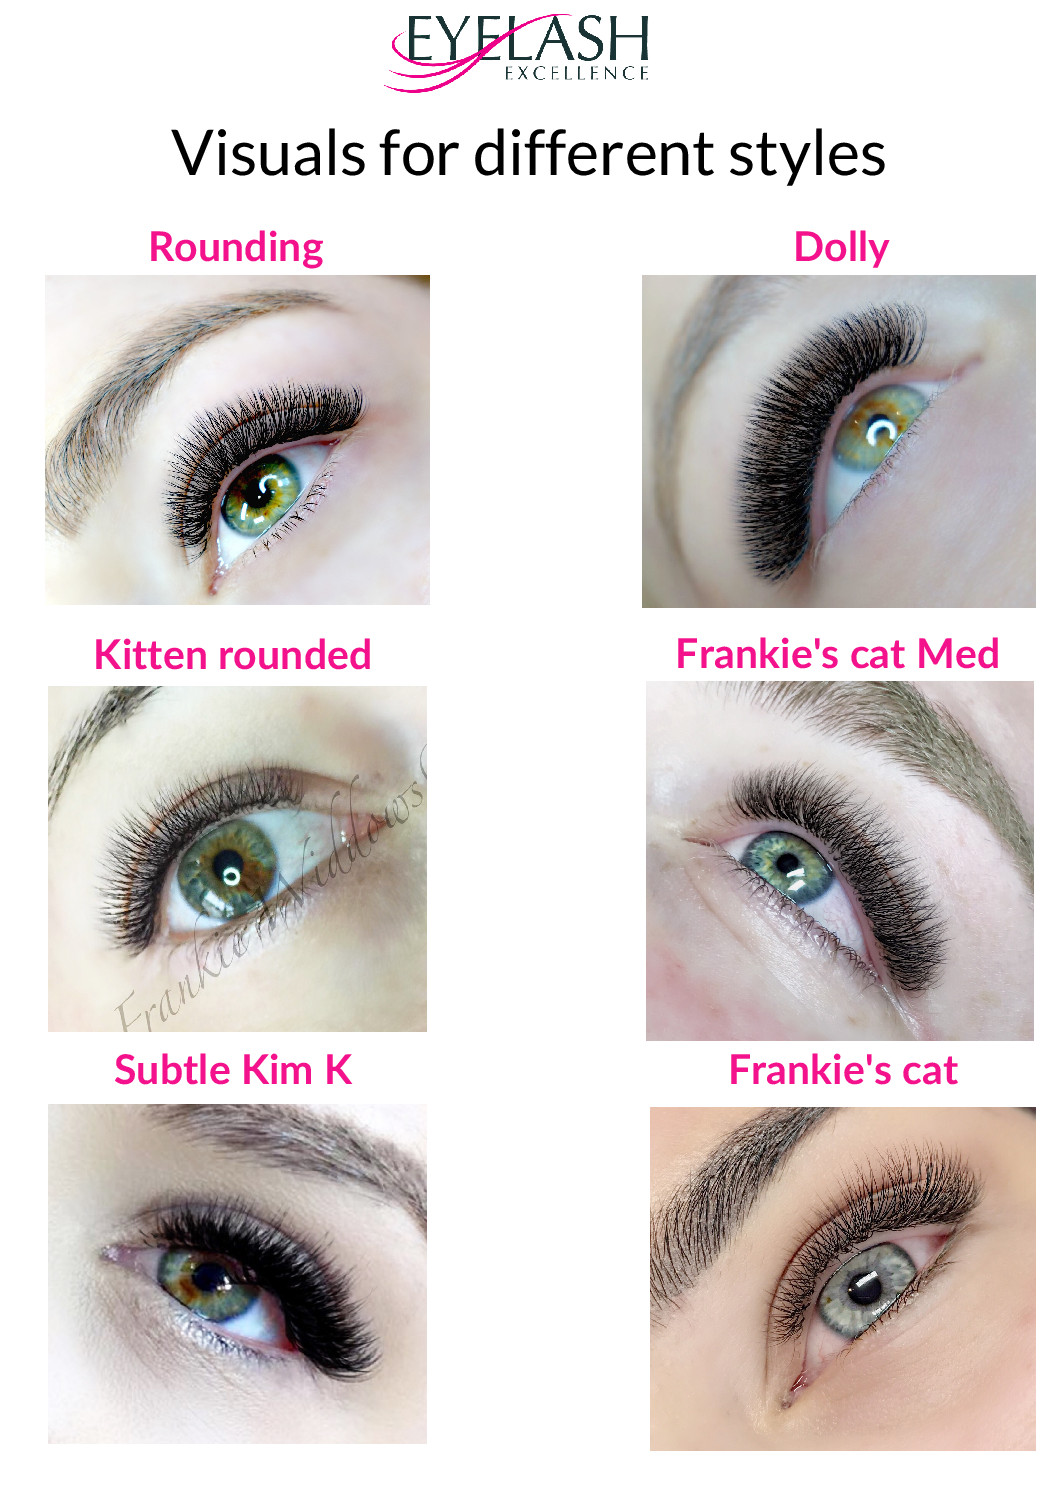 New Improved Eye Styling Guides Eyelash Excellence